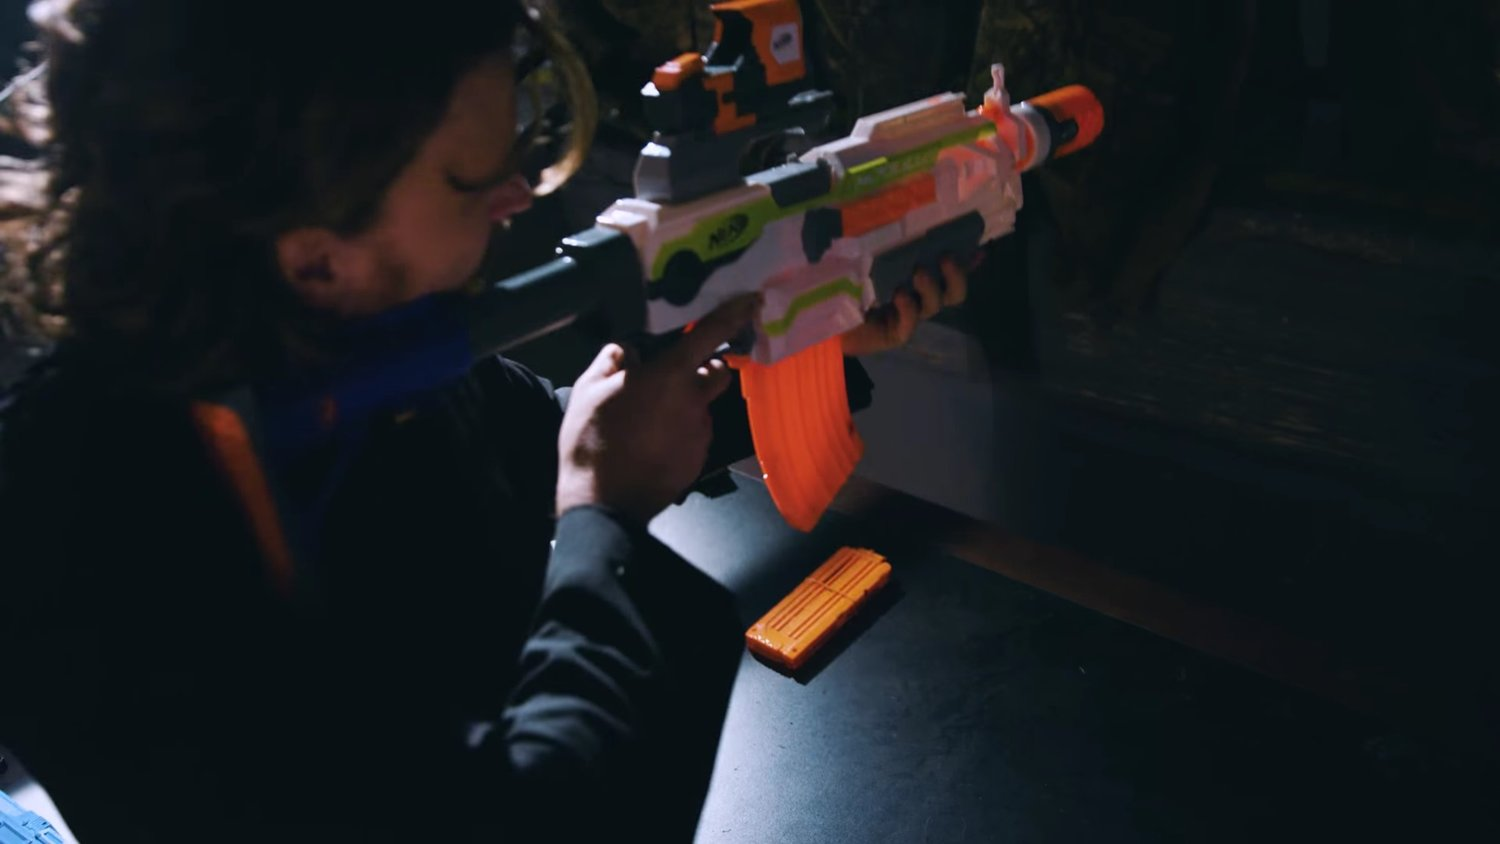 Things Get Crazy in This JOHN WICK-Inspired Nerf Battle